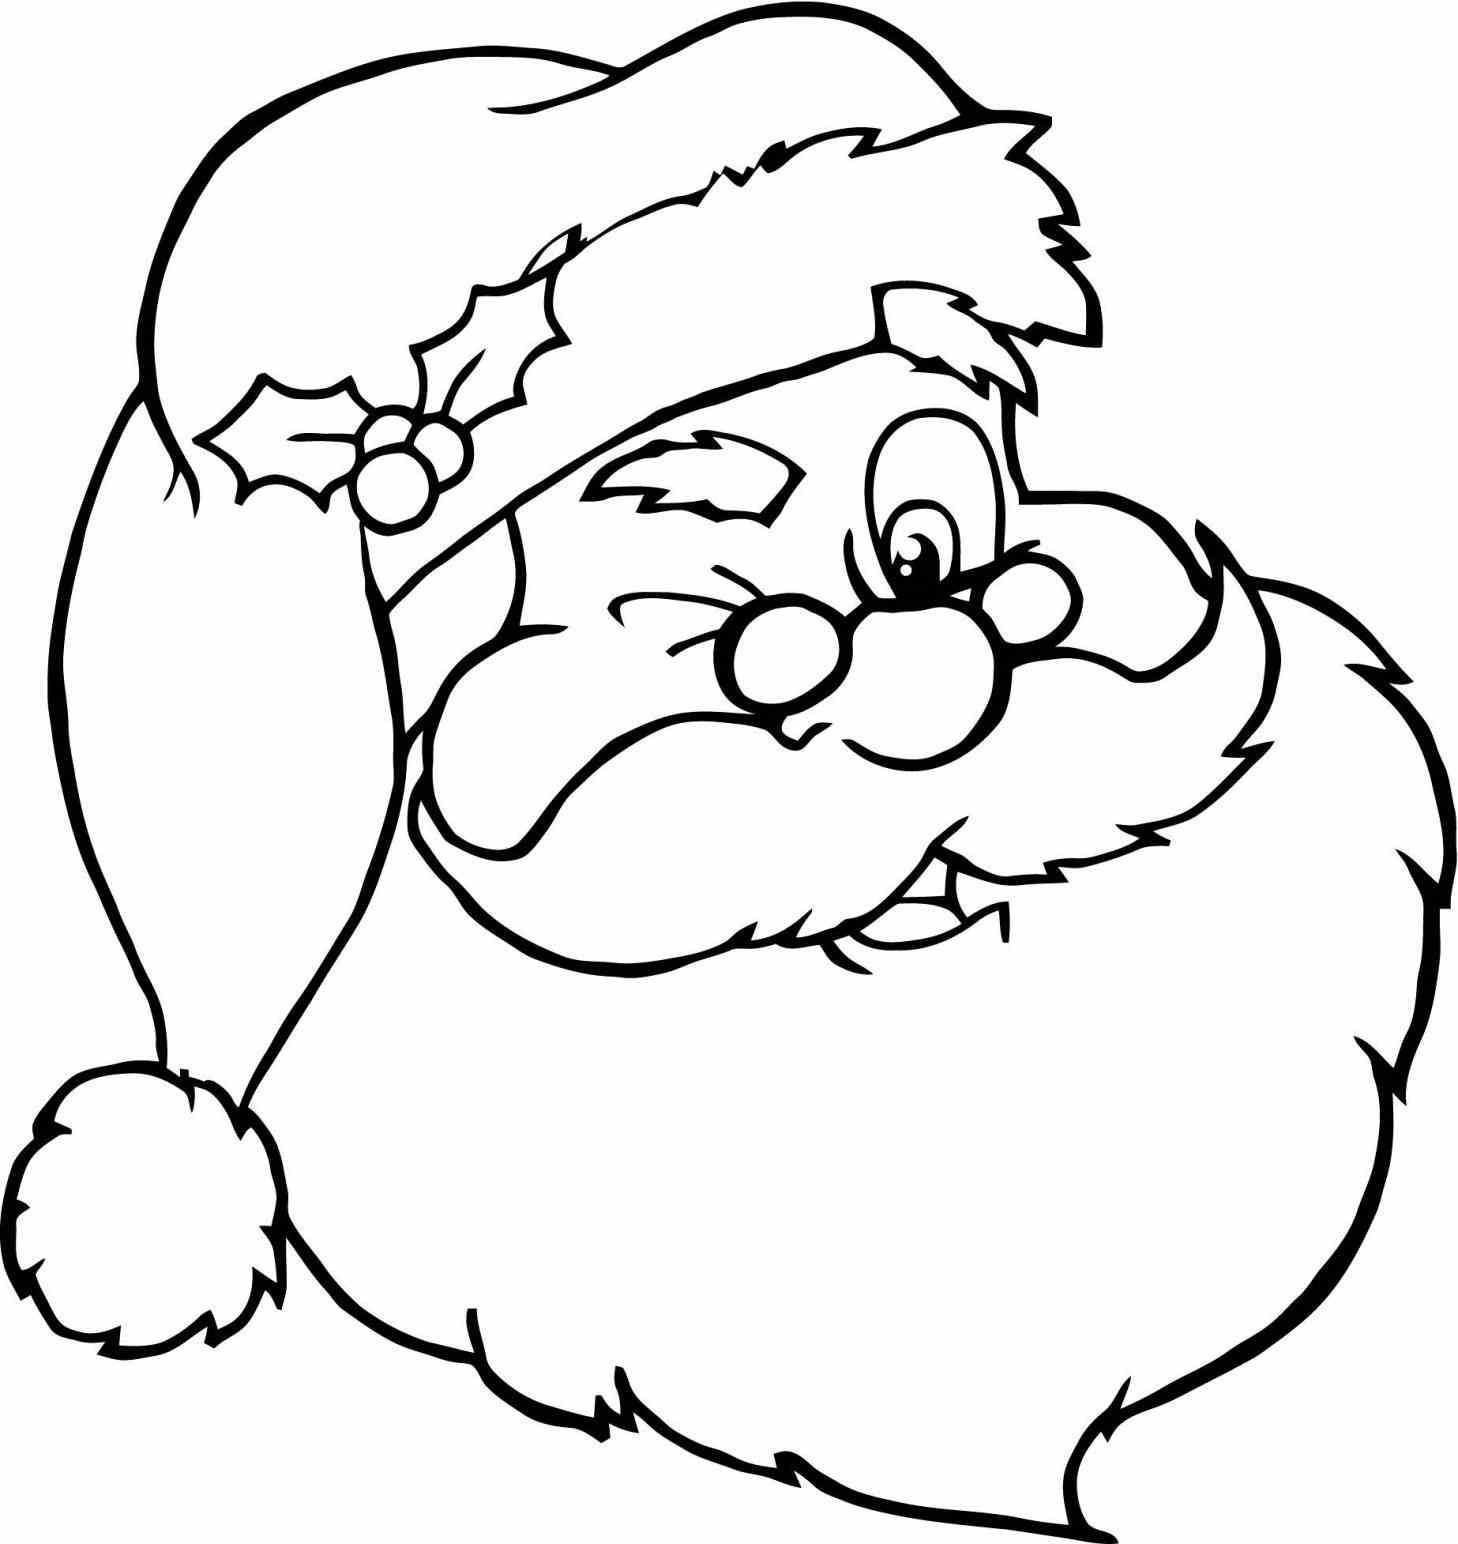 Rudolph Coloring Pages | Free download on ClipArtMag